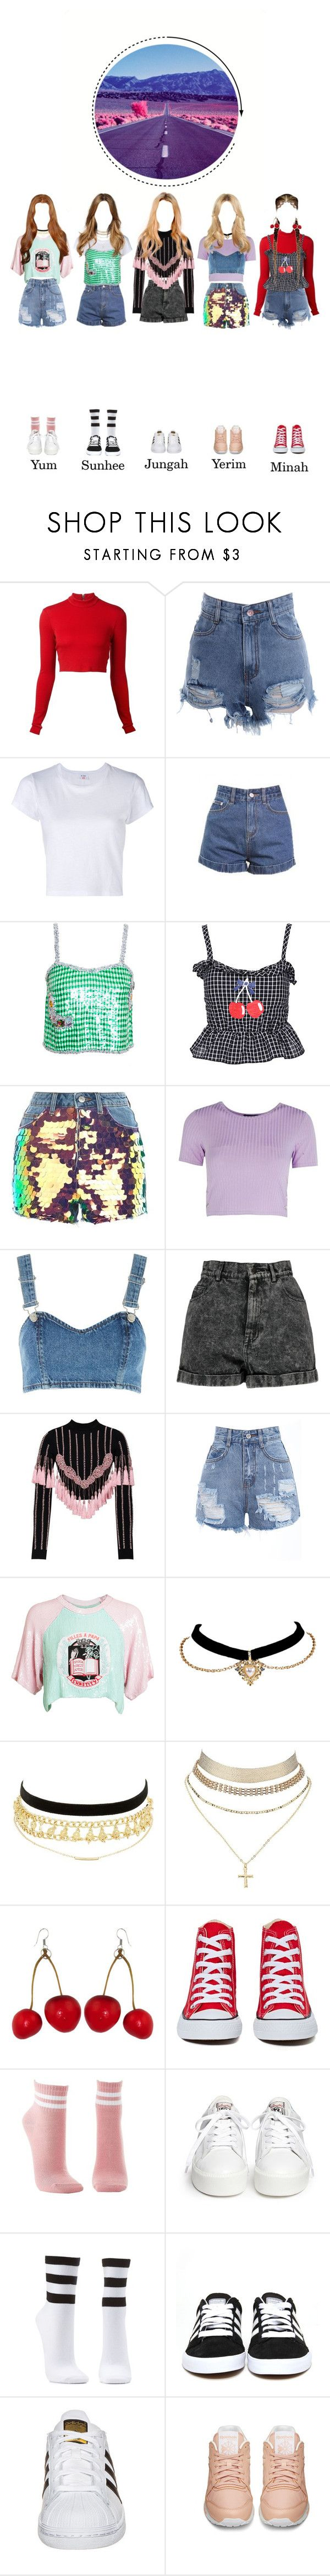 """SOLAR_BOOM_Music Video"" by solarofficial ❤ liked on Polyvore featuring Alice + Olivia, RE/DONE, Ashish, Topshop, Boohoo, Retrò, Filles à papa, Charlotte Russe, Converse and Ash"